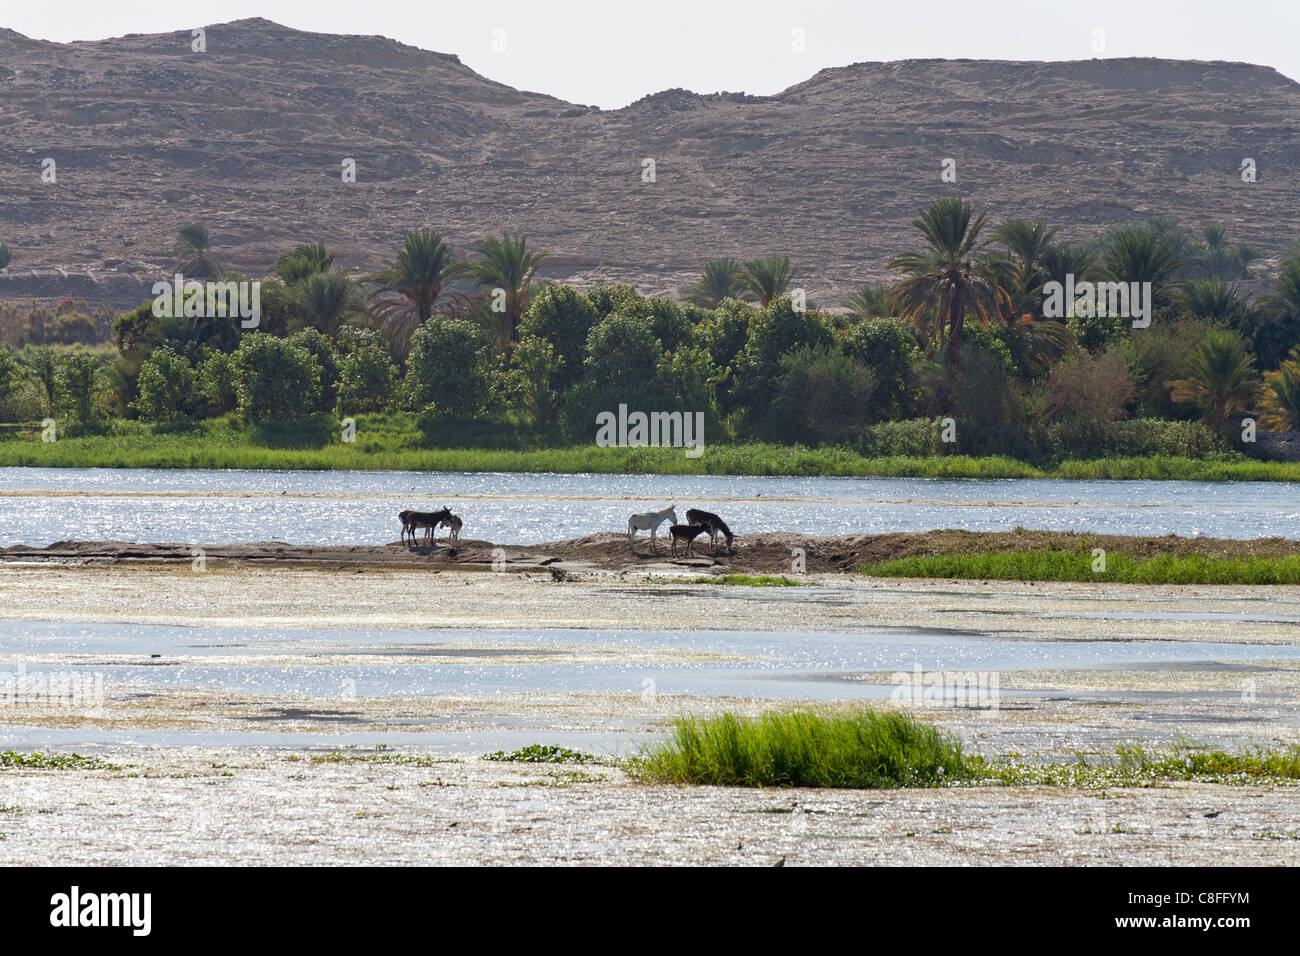 Six donkeys grazing on a small island on the Nile with mud flats in front, and river, palms and mountains in background, - Stock Image